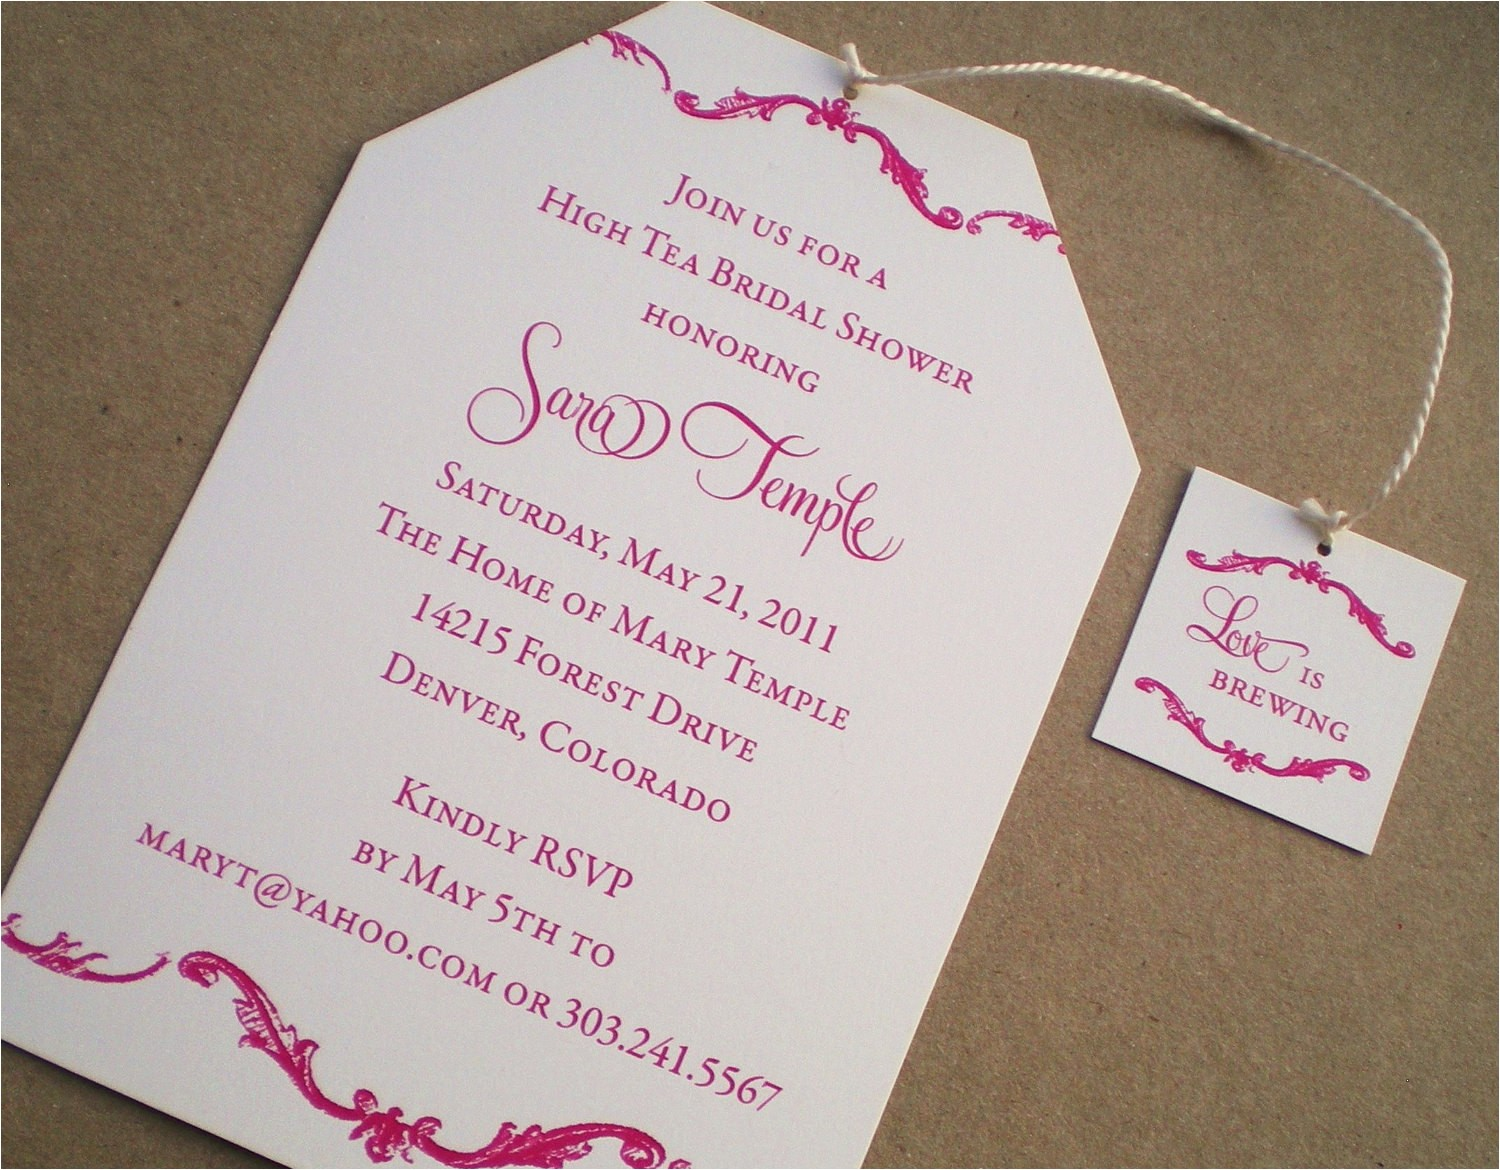 high tea bridal shower invitations